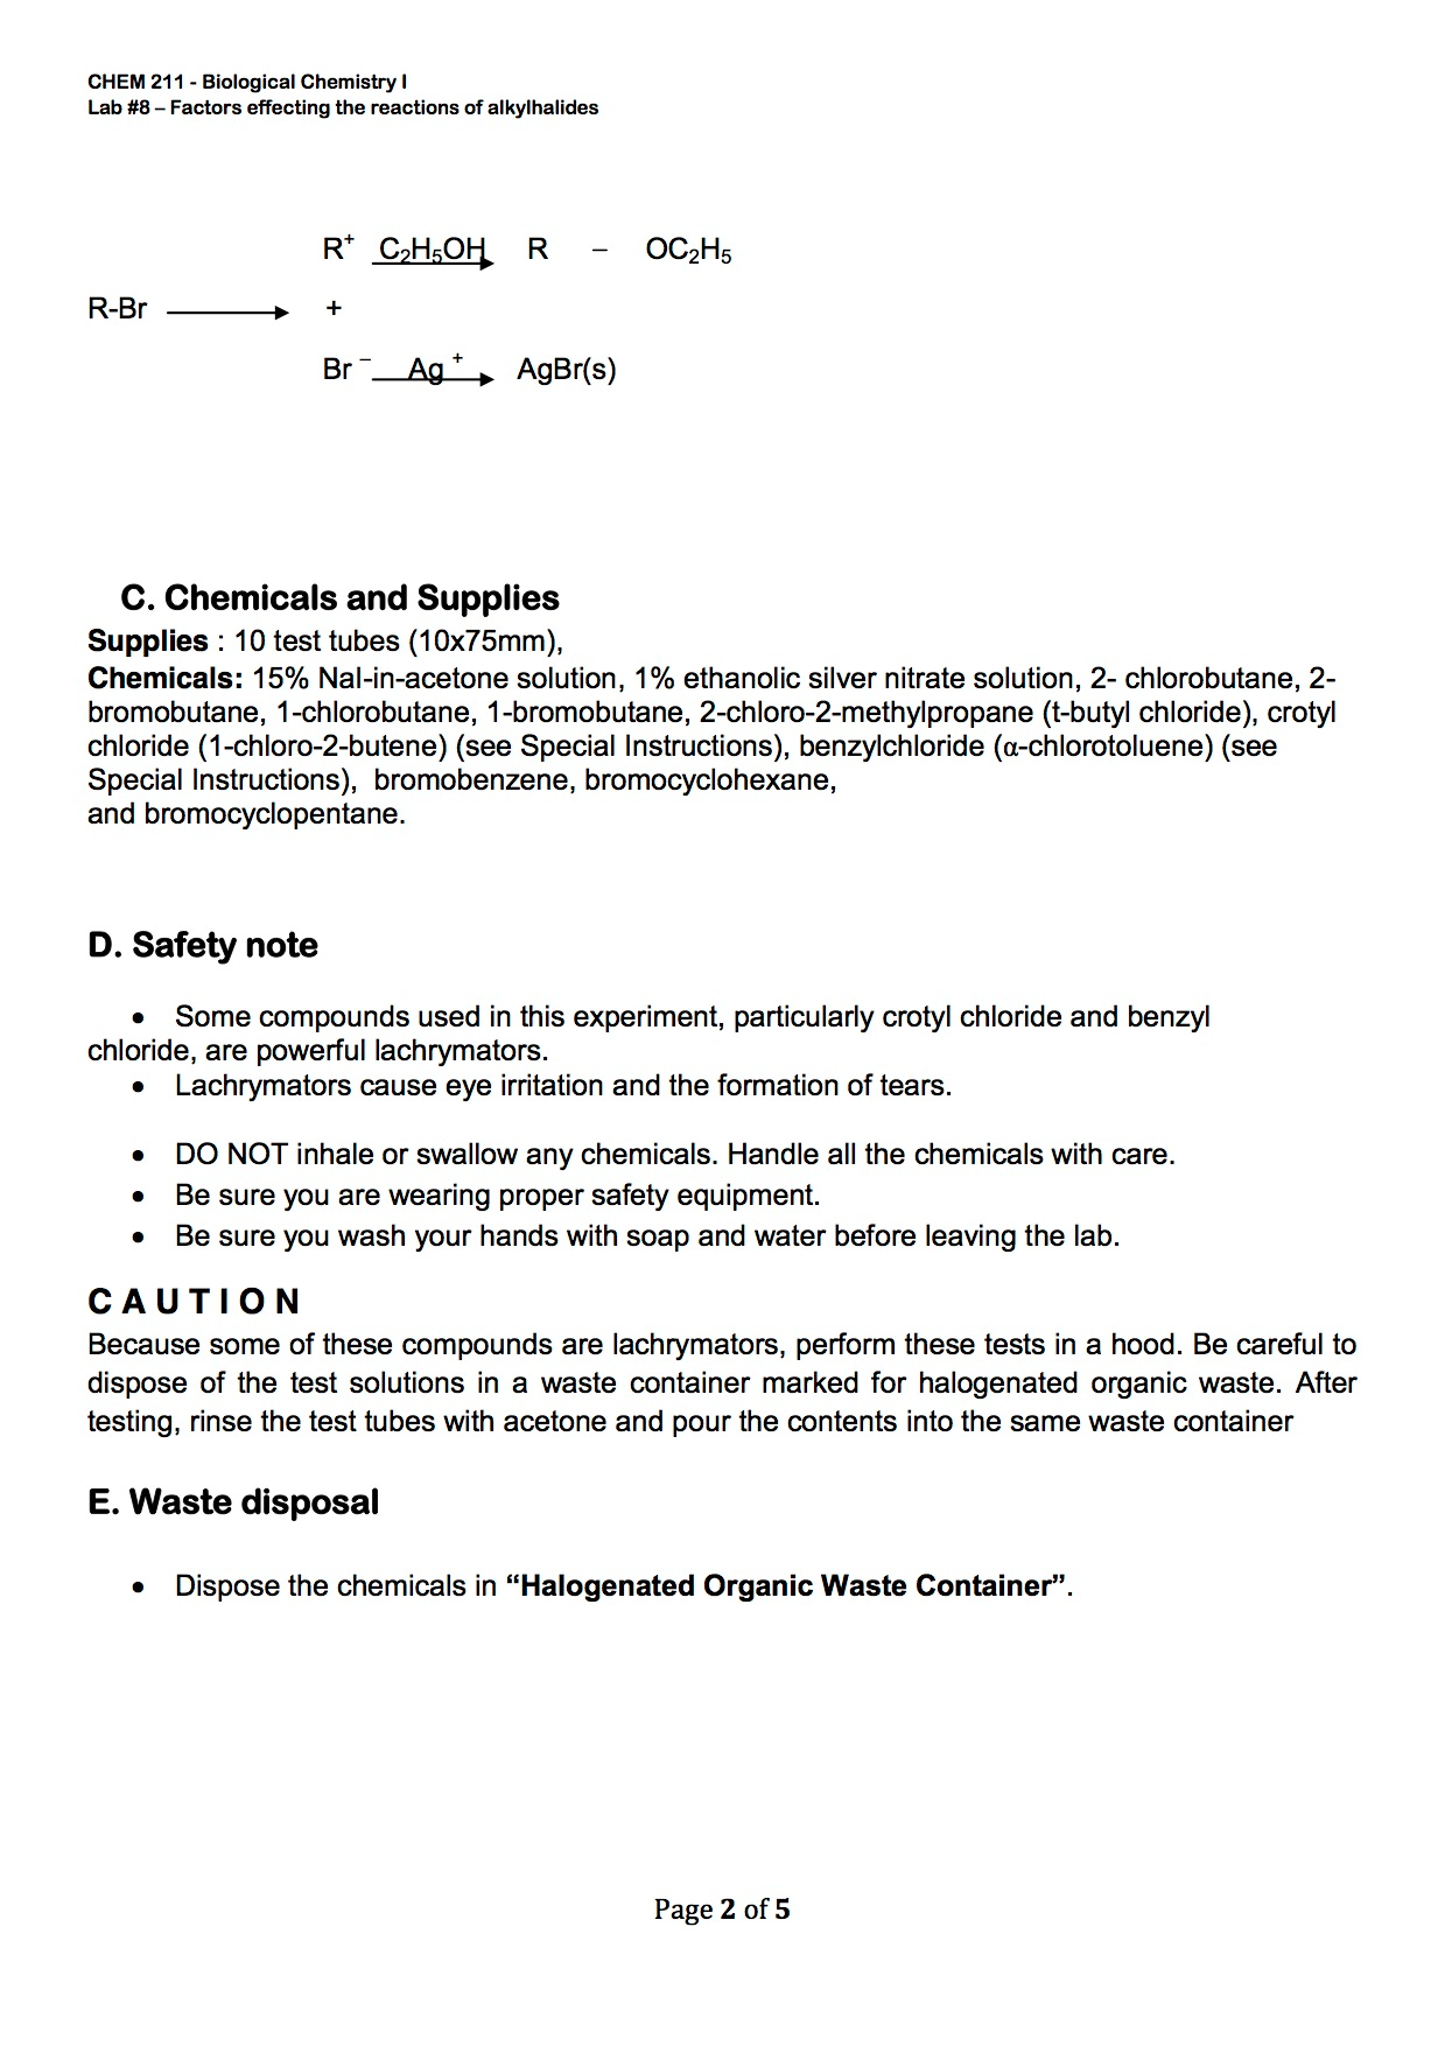 solved questions 1 in the tests with sodium iodide in a